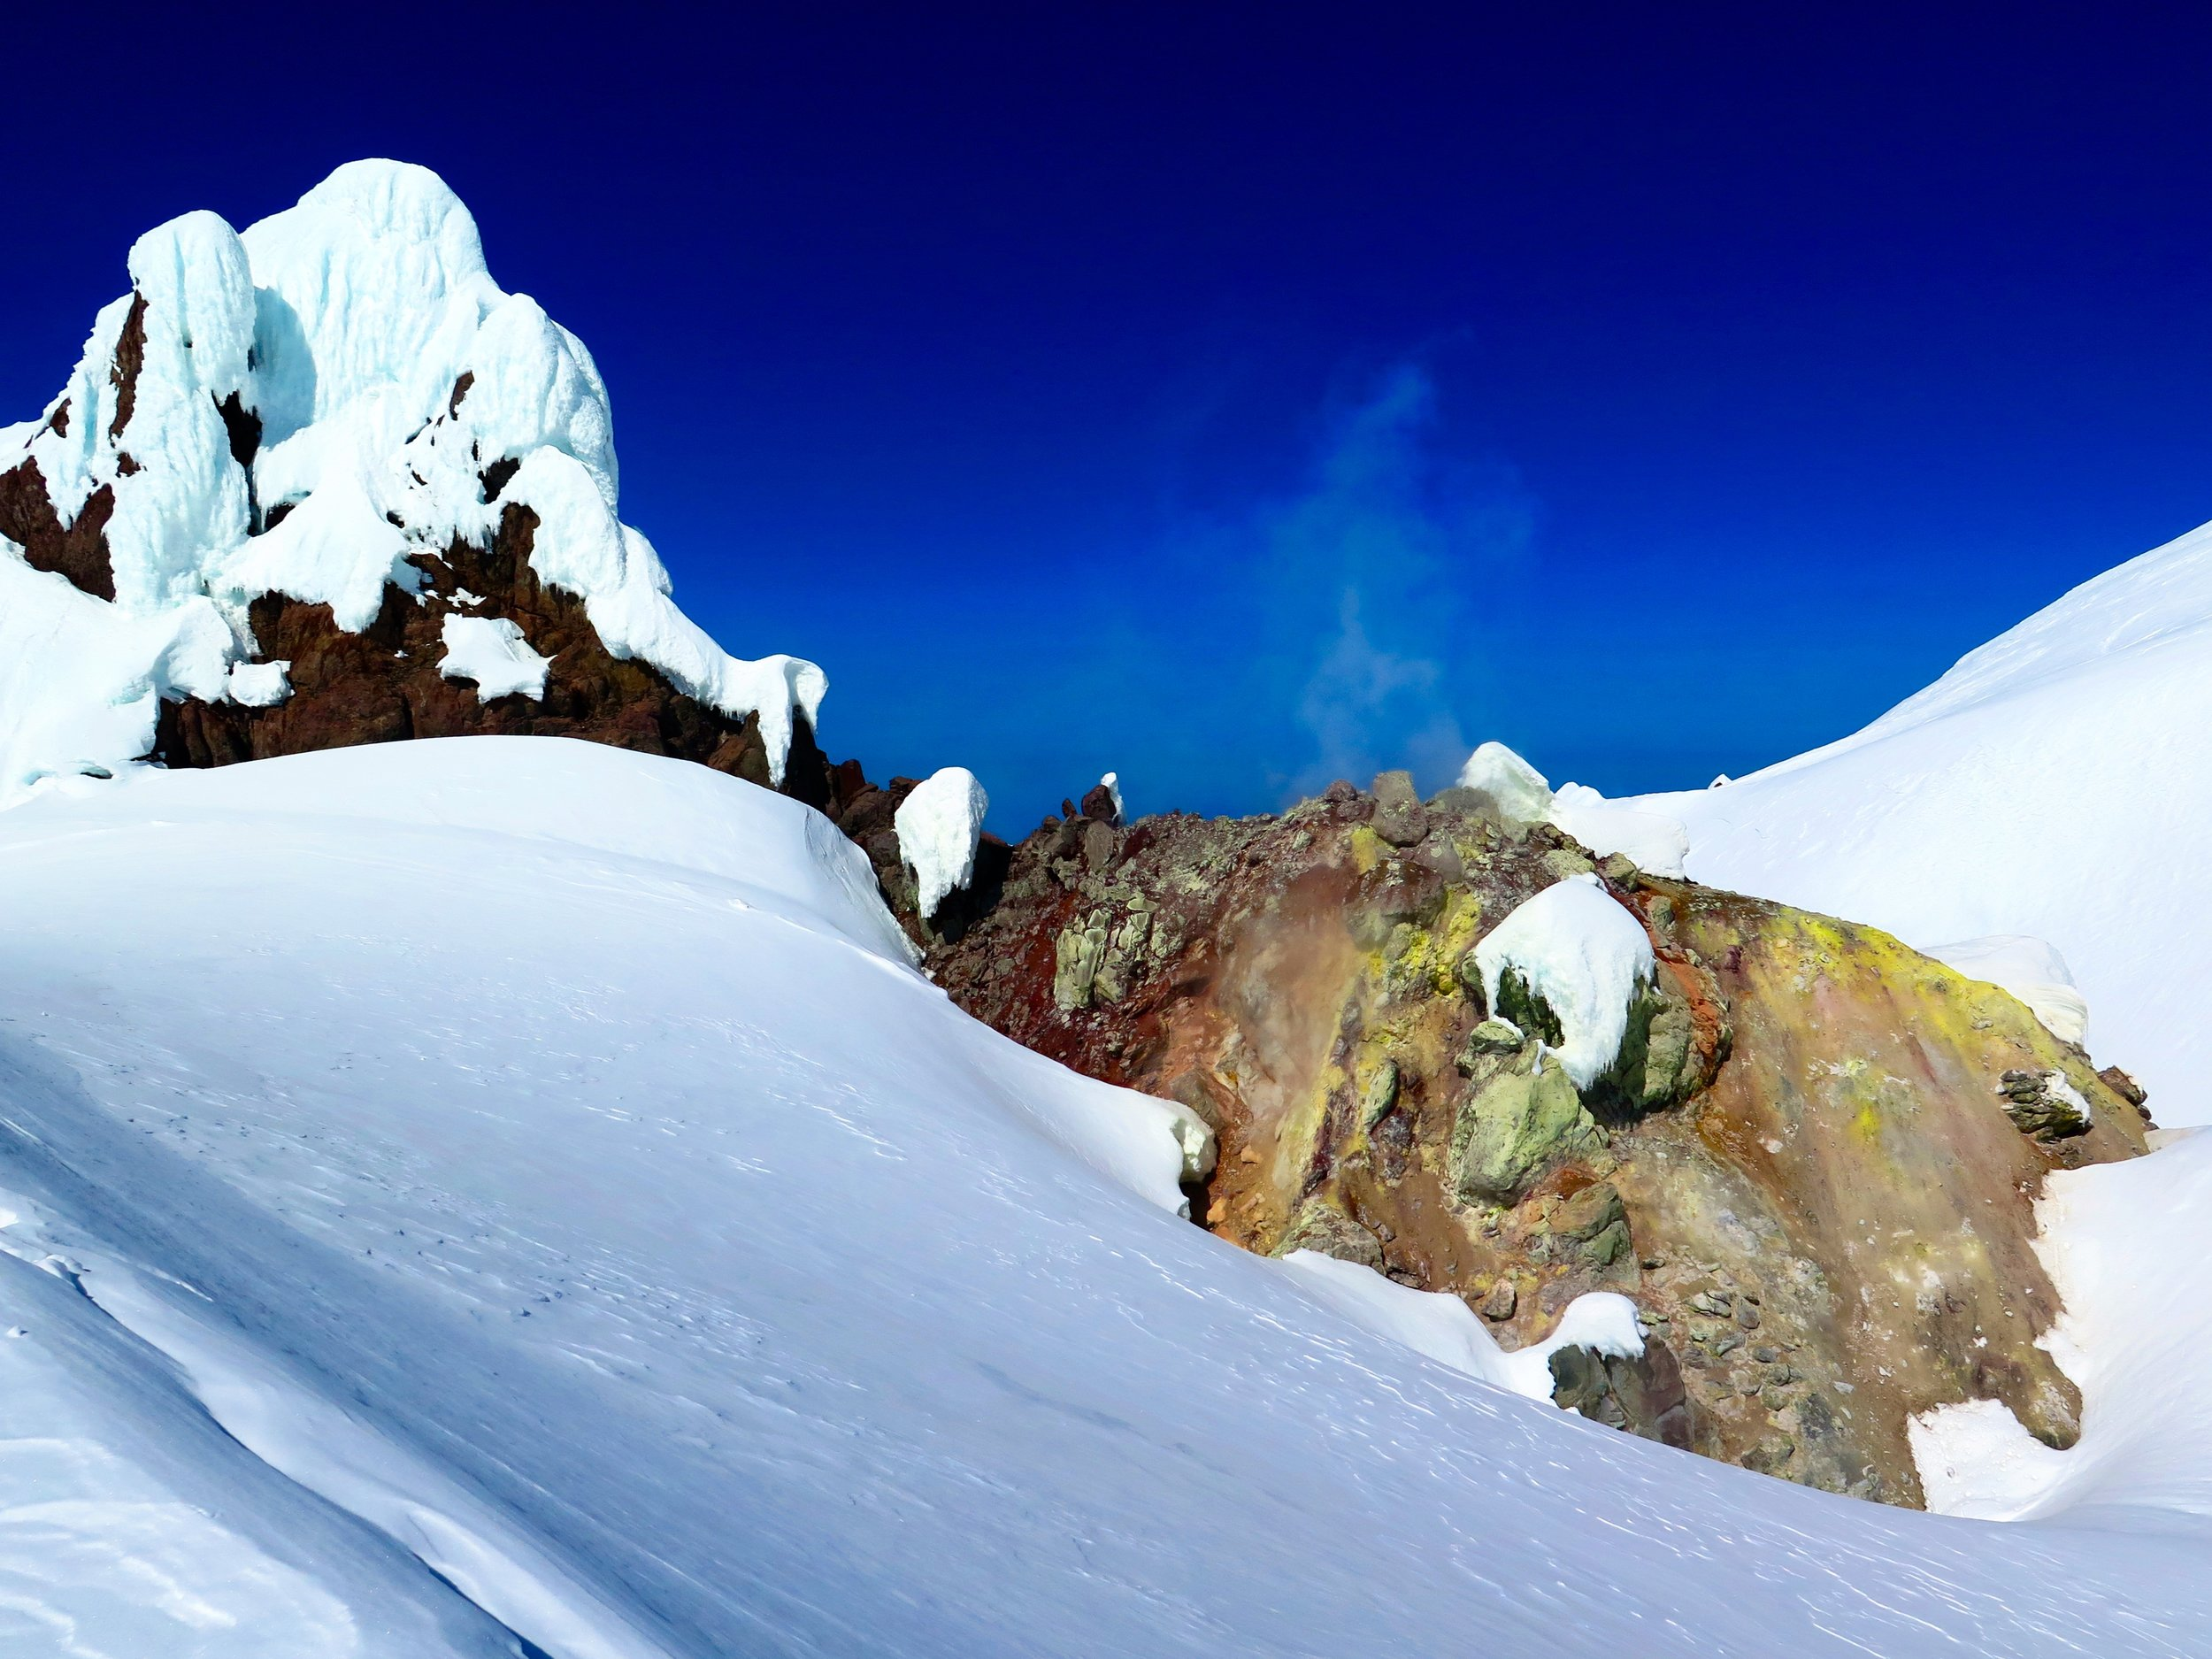 Sulpher vents billowing out of Mount Hood.